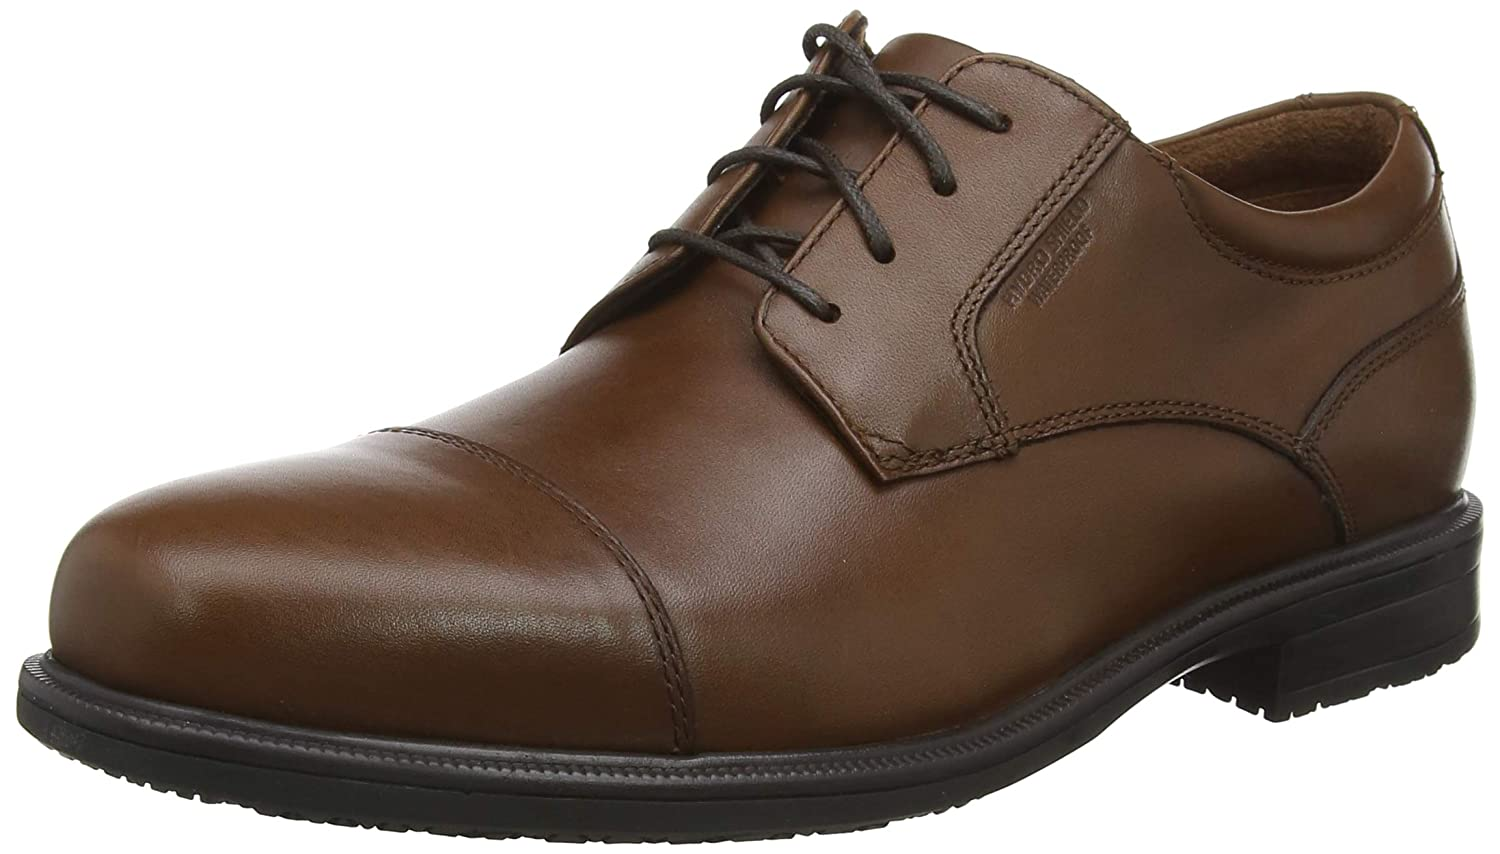 TALLA 40 EU. Rockport Esntial Dtlii Captoe Tan Antique Le, Zapatos de Cordones Oxford para Hombre